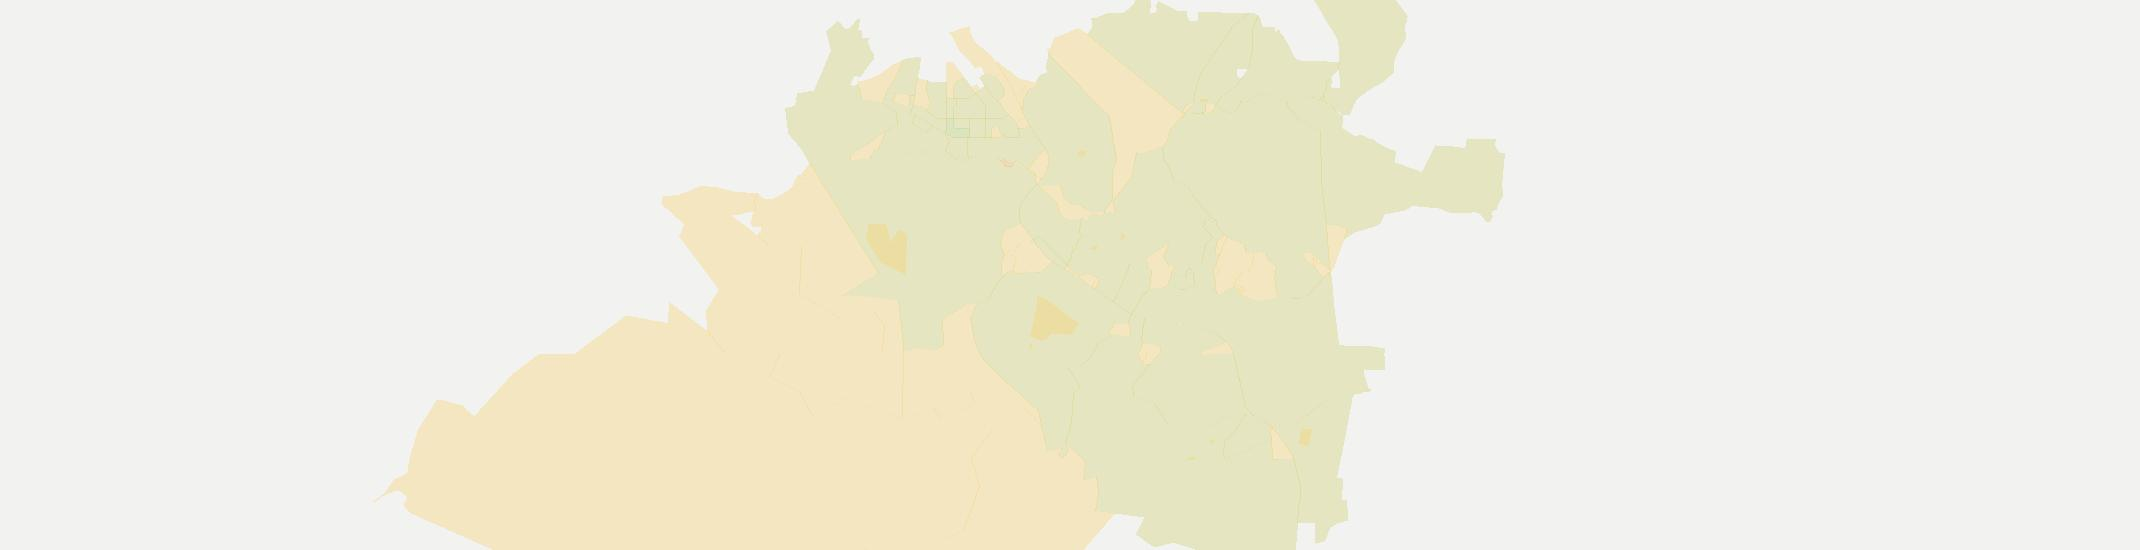 Ordot Internet Competition Map. Click for interactive map.